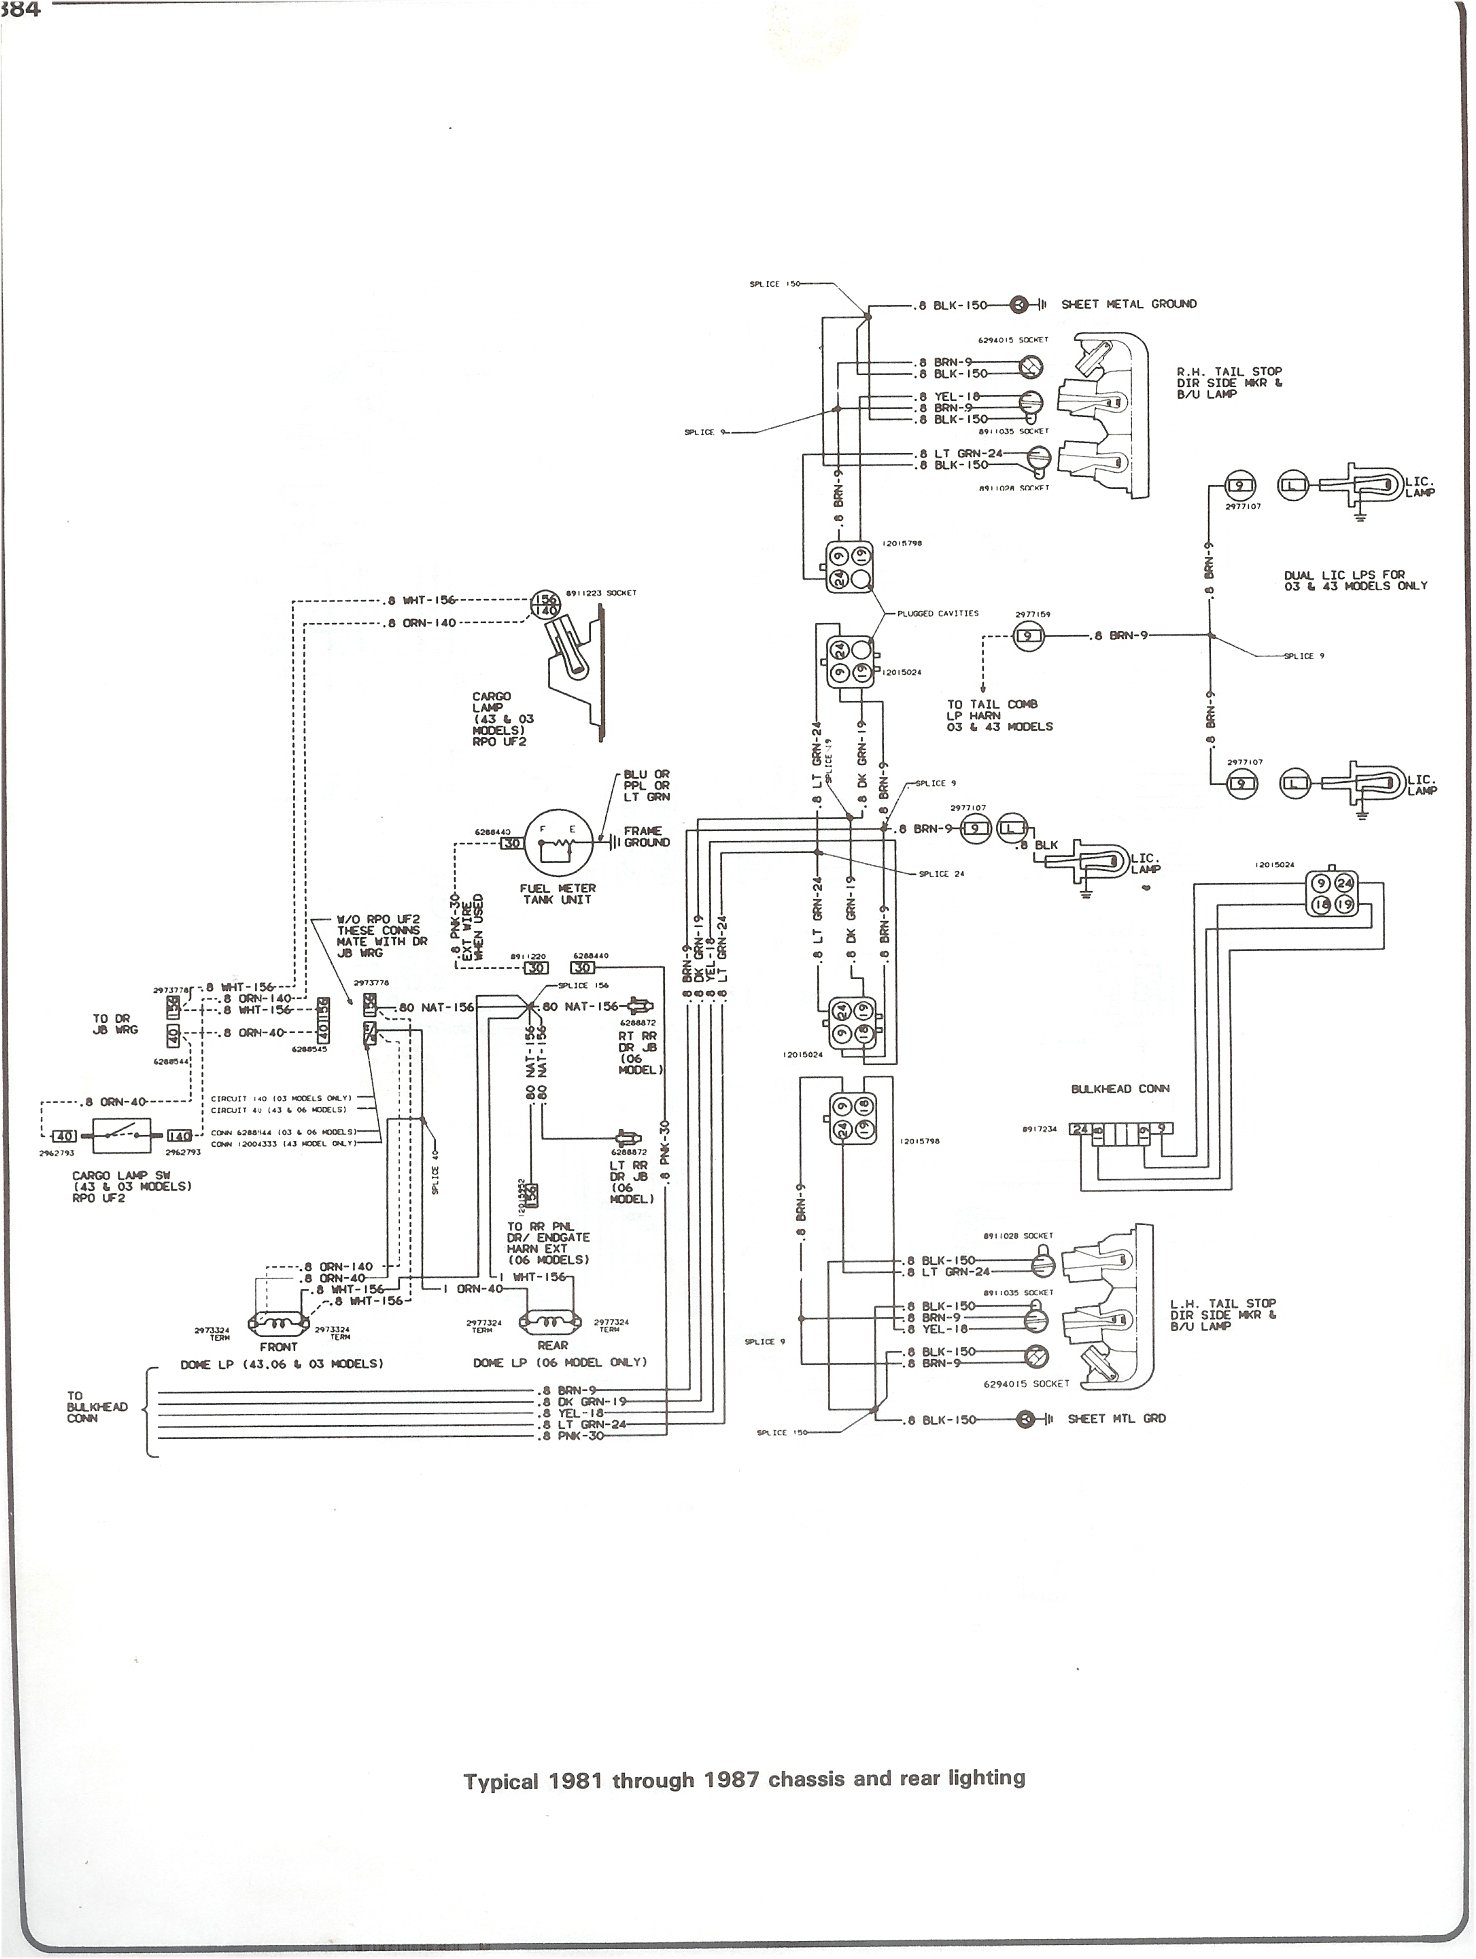 1977 Dodge Engine Wiring Diagram Will Be A Thing Schematics Diagrams Chevy Silverado Drawing At Getdrawings Com Free For Alternator 85 Ram Ignition